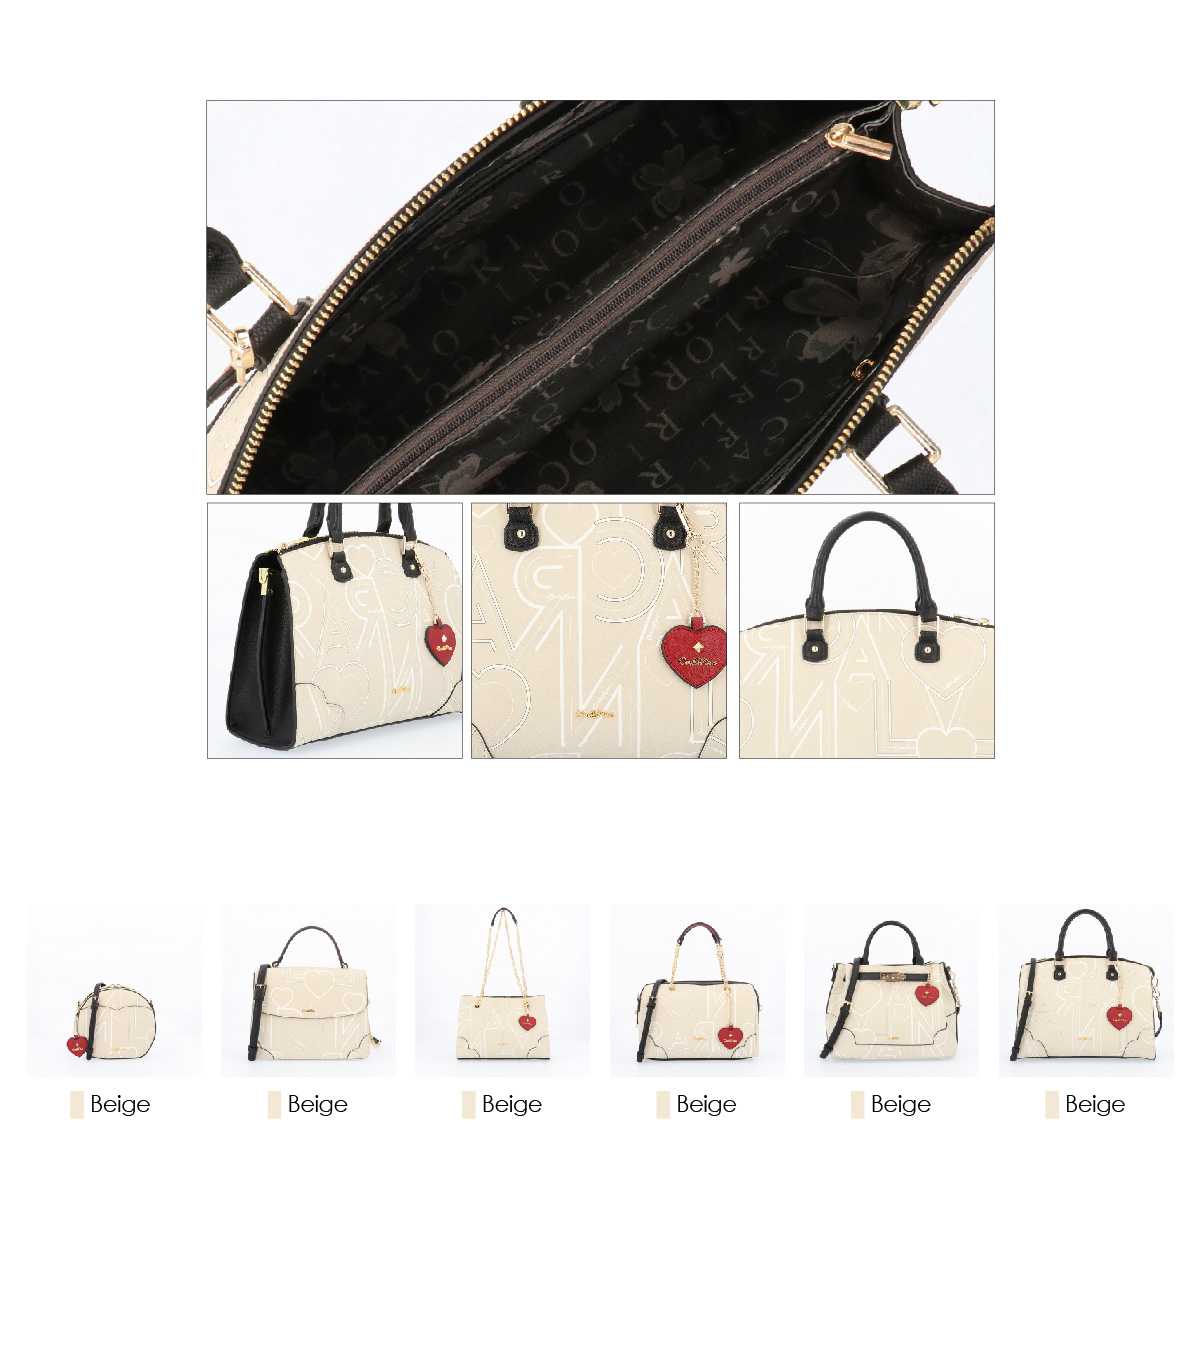 0304807G 006 21 03 - Love is in the Air Top Handle Tote